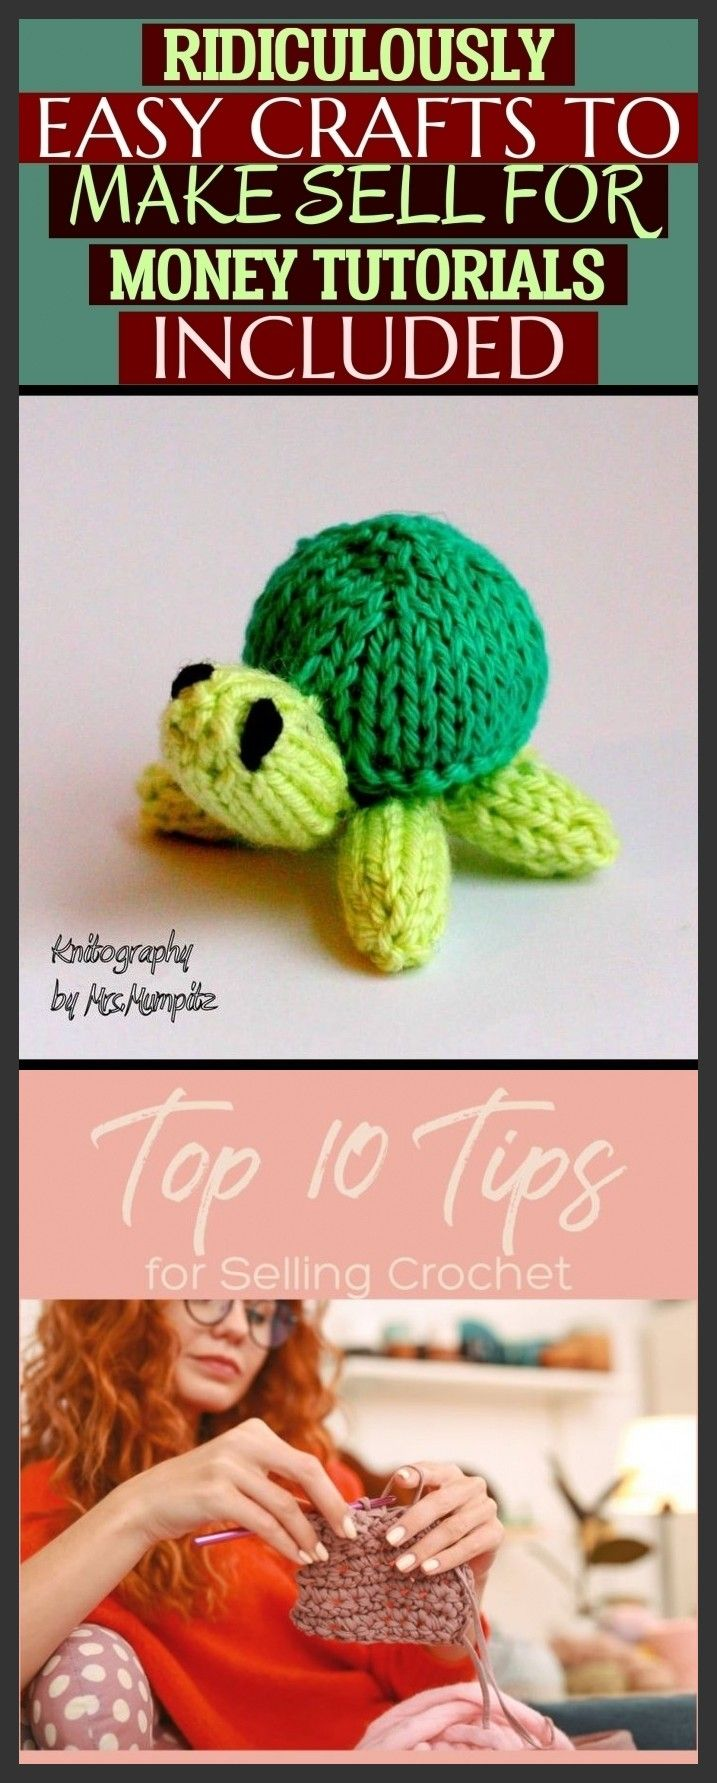 Ridiculously Easy Crafts To Make Sell For Money Tutorials Included #crochetformoney